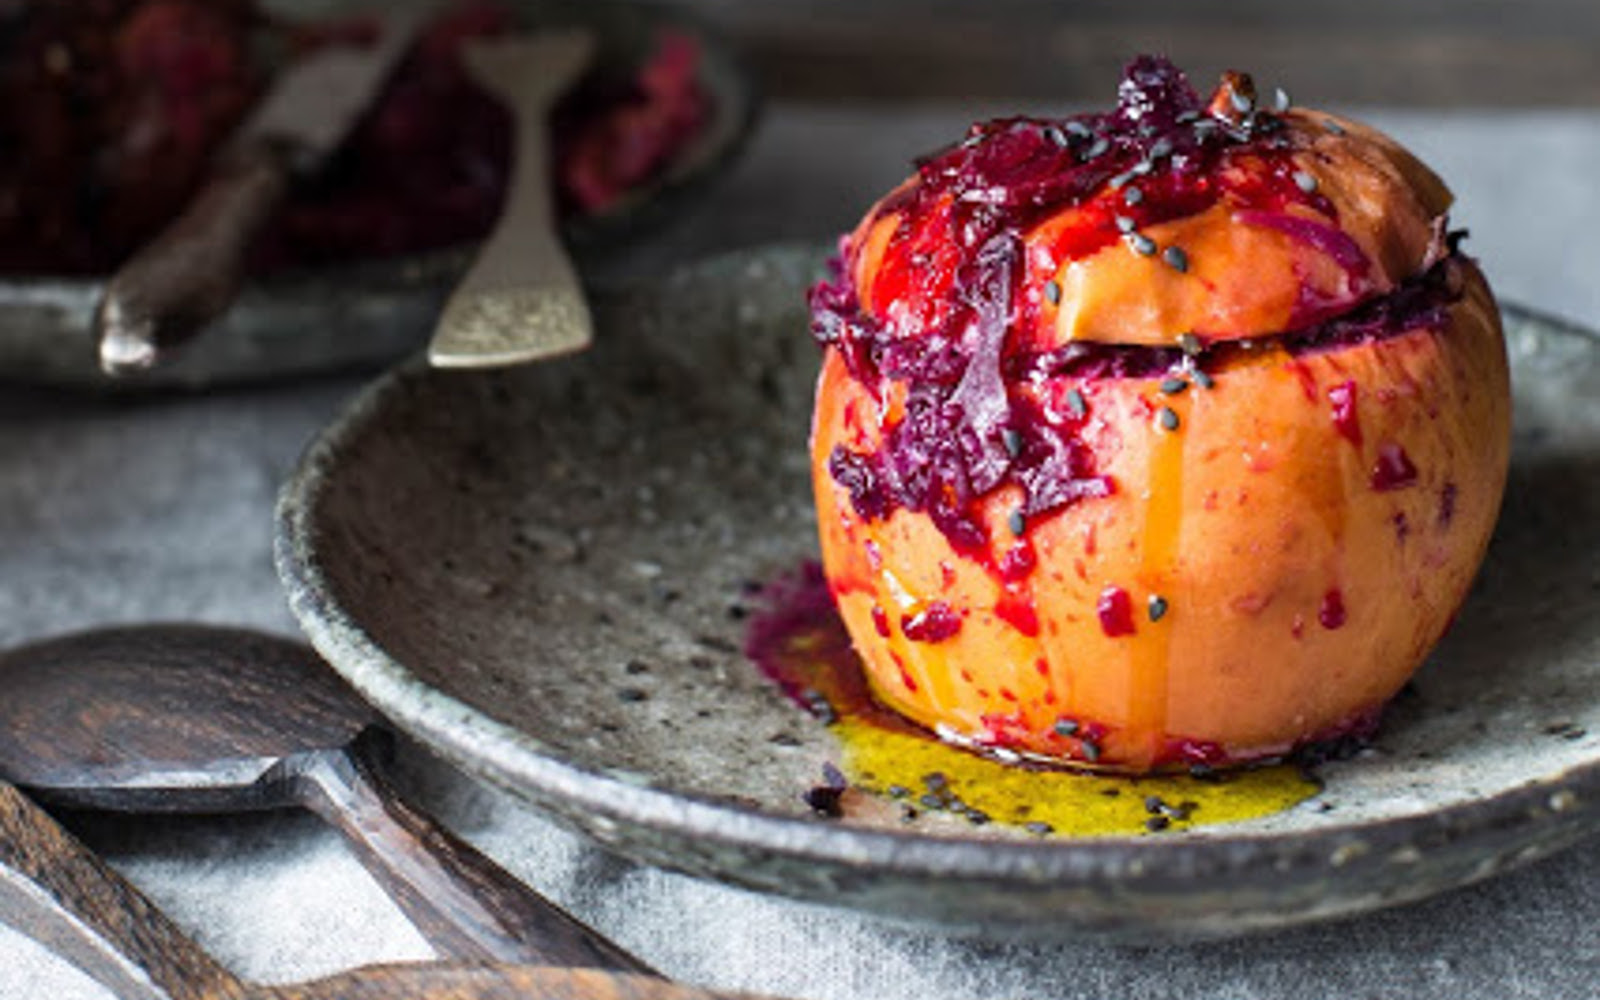 Apples Stuffed With Red Cabbage and Cranberries